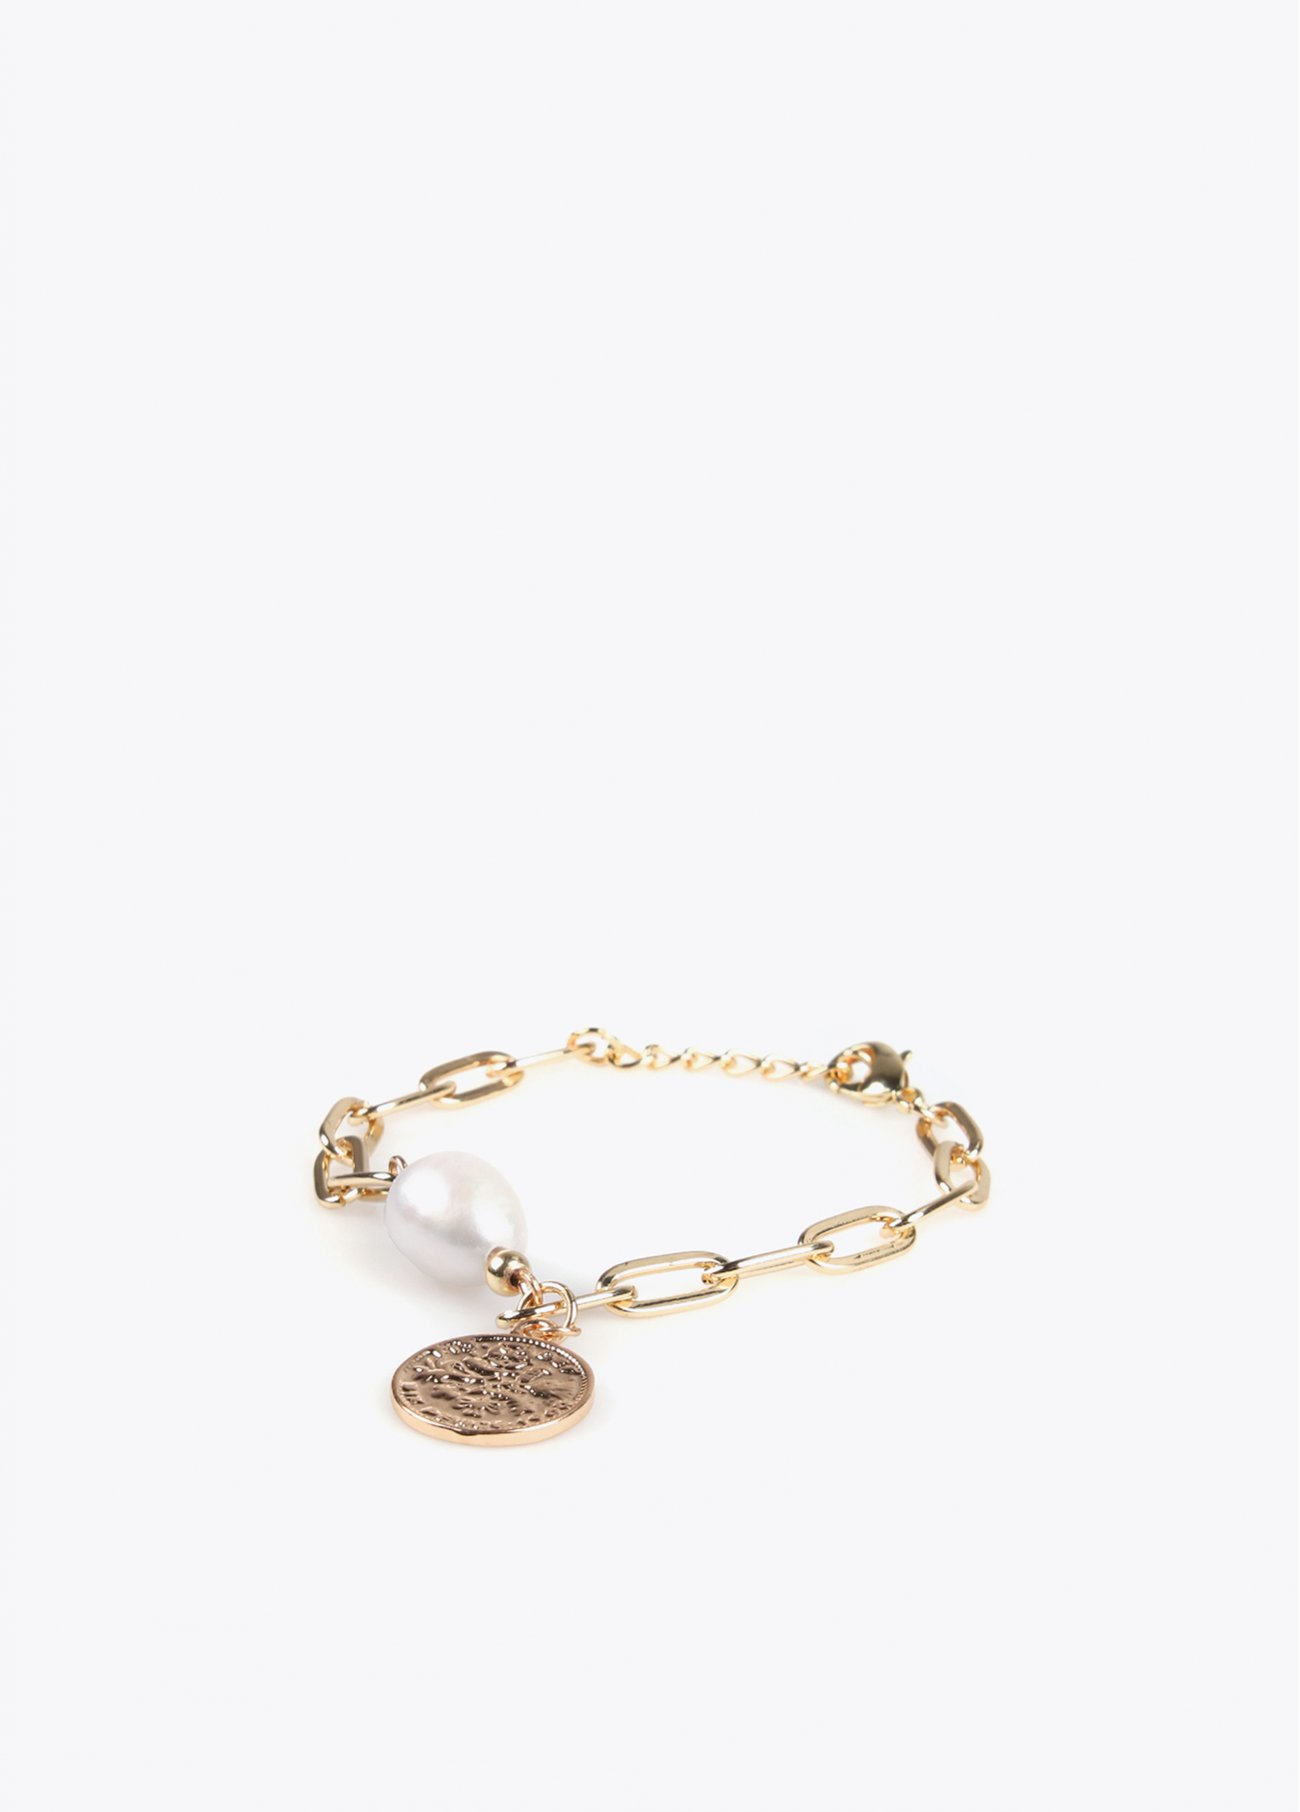 Golden bracelet with coin and faux pearl